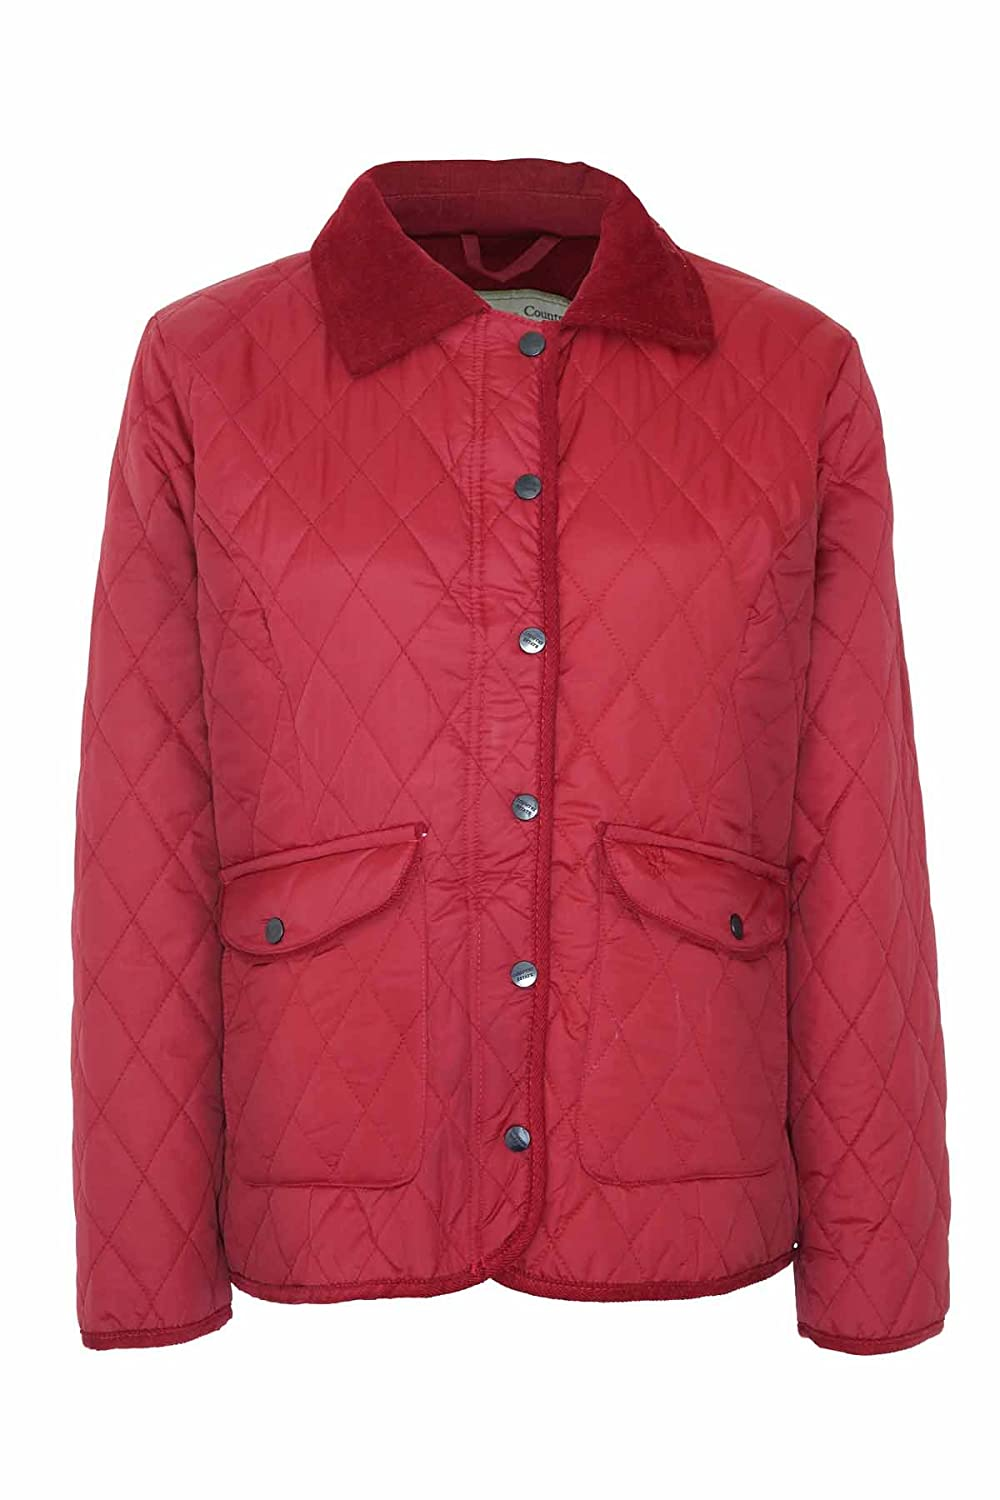 Womens Quilted Jacket Country Estate Chmpion Aylesbury Press Stud Button Fastening